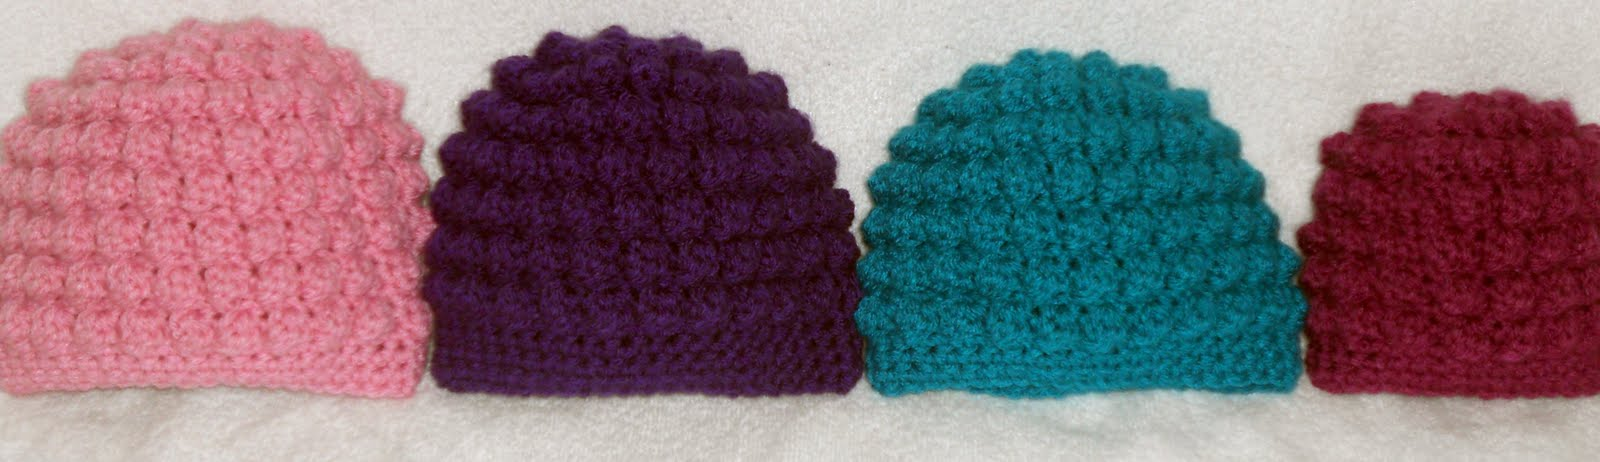 Crochet Beanie Pattern For Child : Crafty Woman Creations: Free Baby Bumpy Bobbles Beanie ...